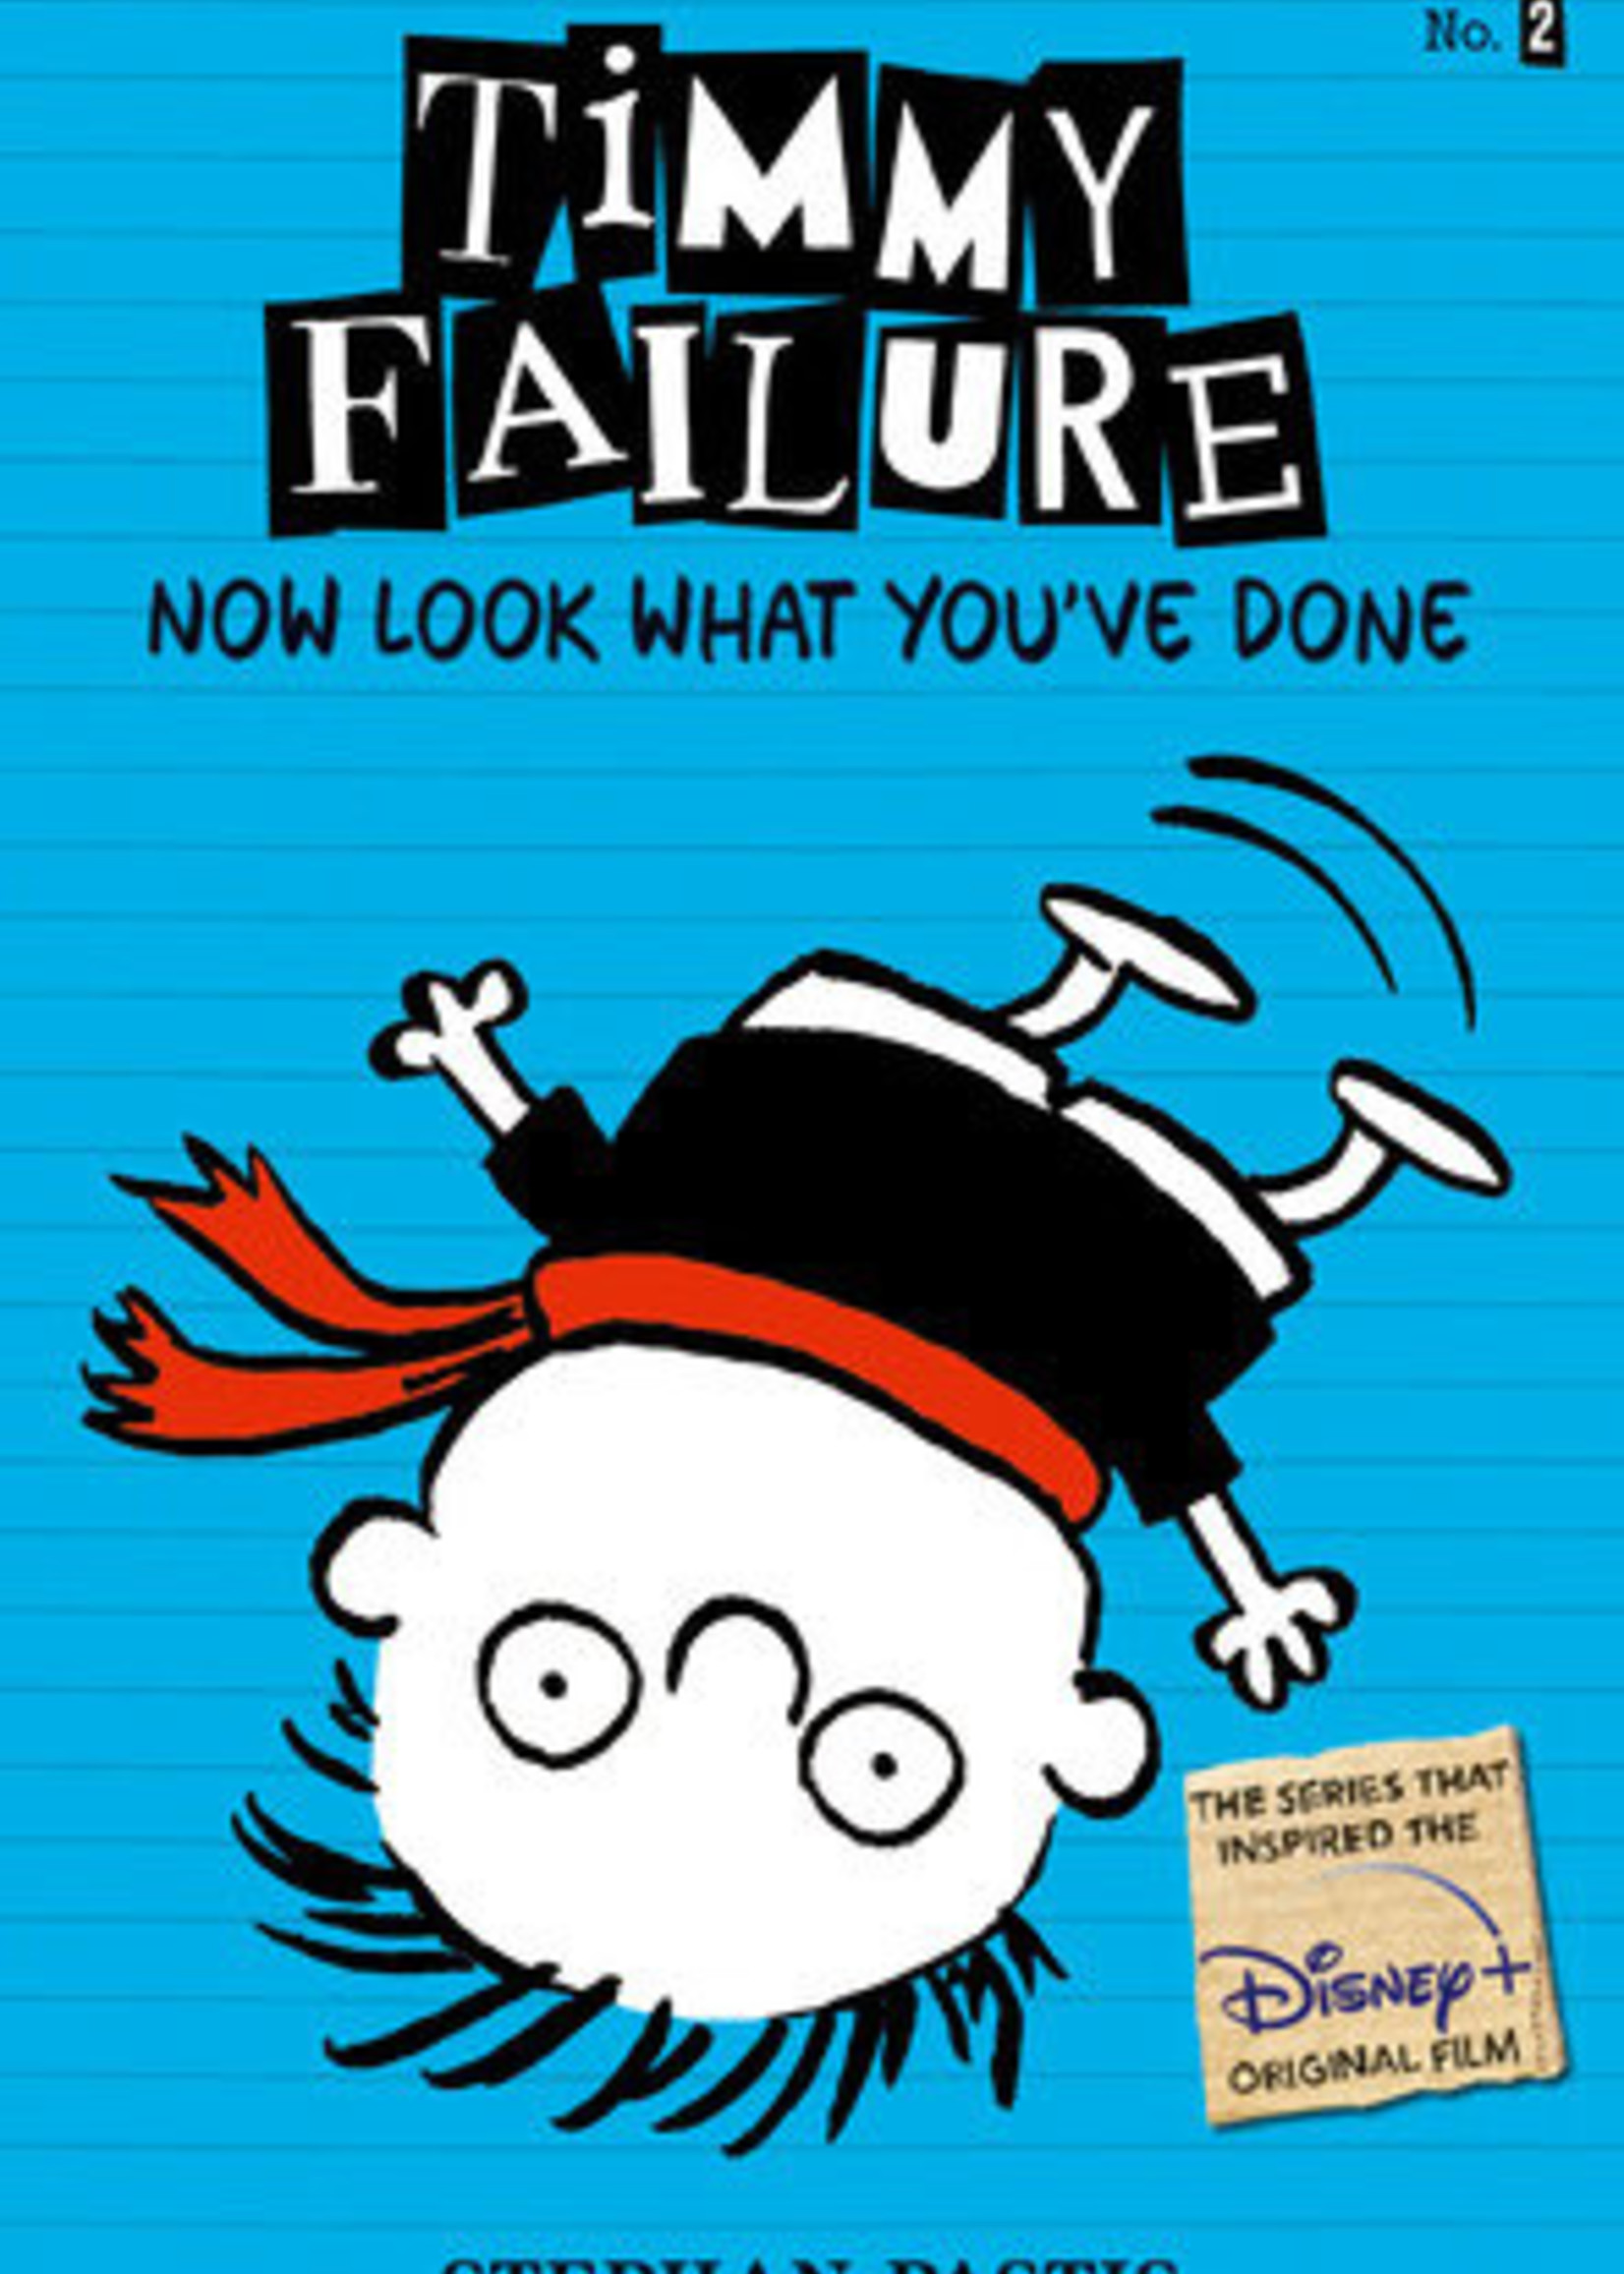 Timmy Failure #02, Now Look What You've Done Illustrated Novel - Paperback